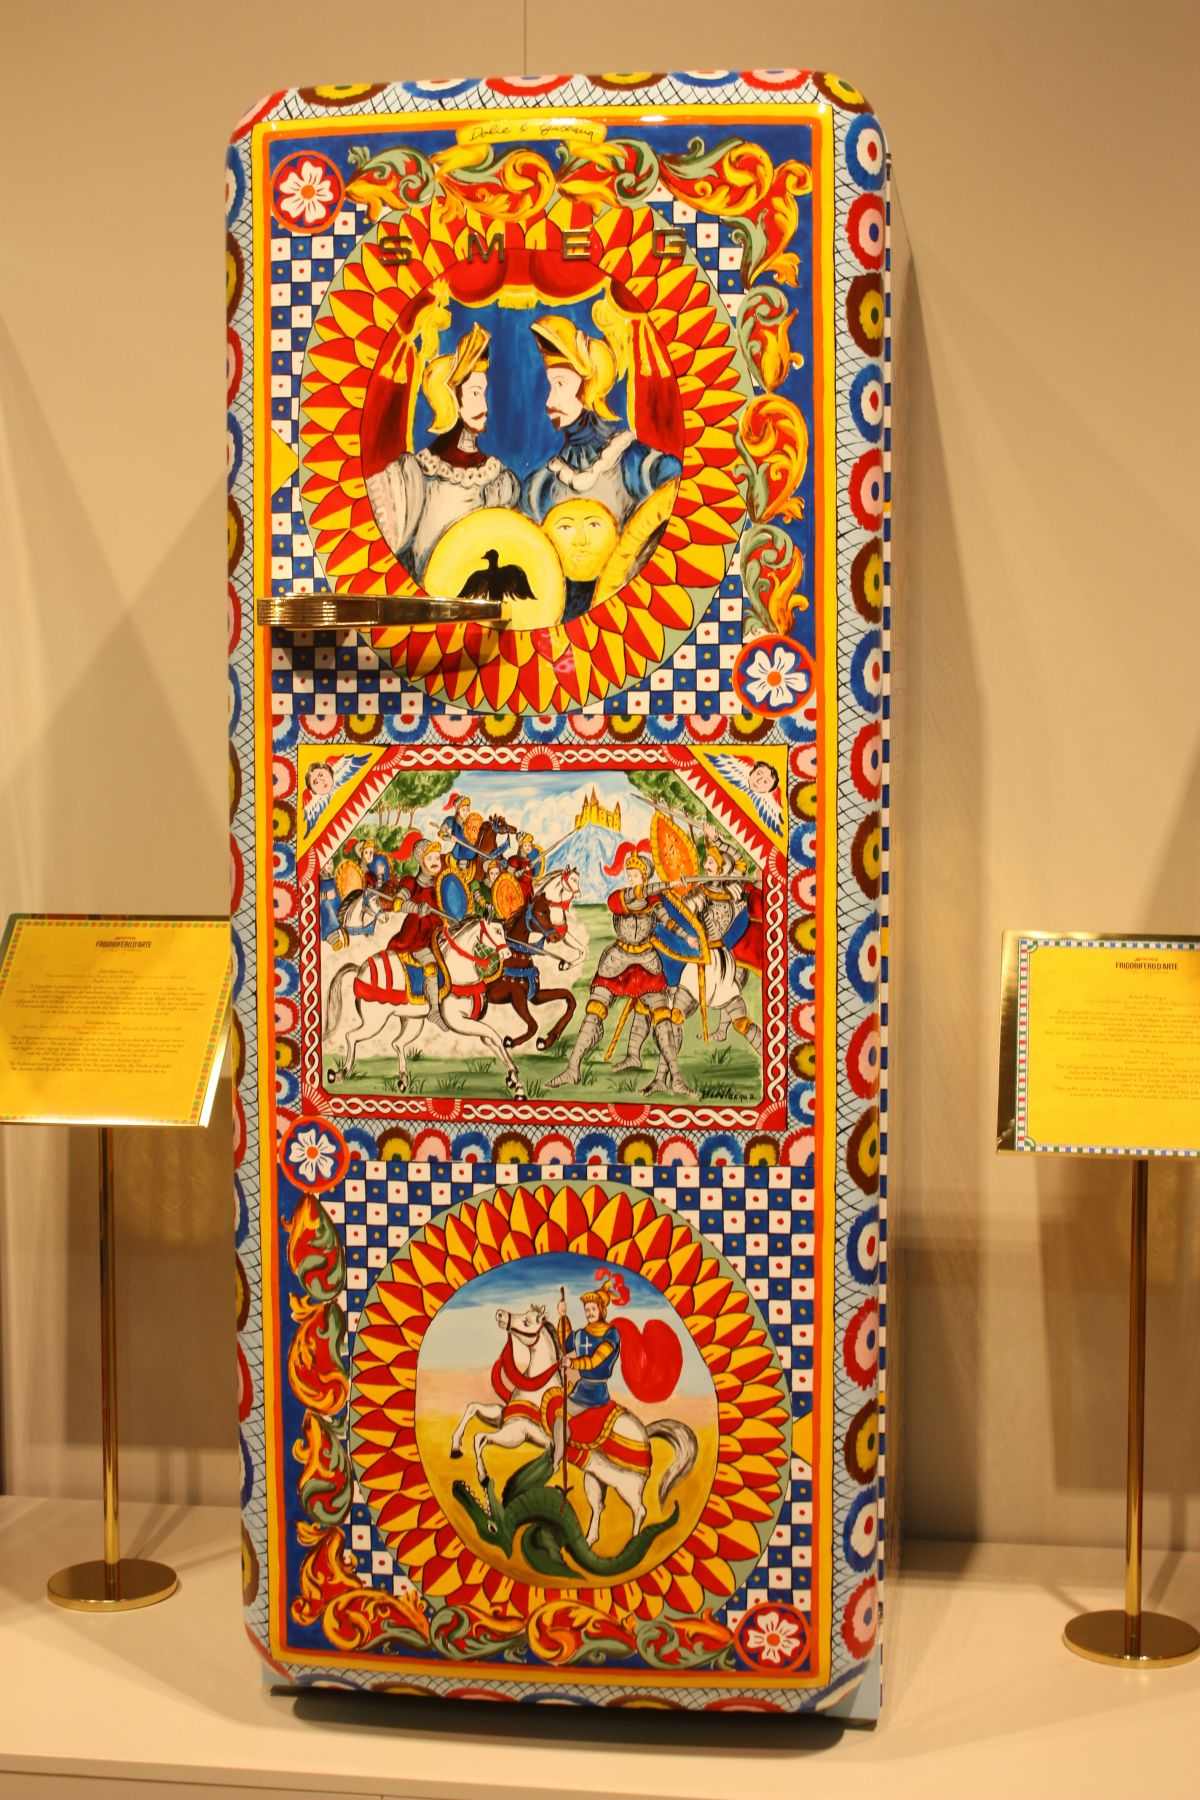 The design are unique and depict a variety of scenes inspired by Sicilian artists